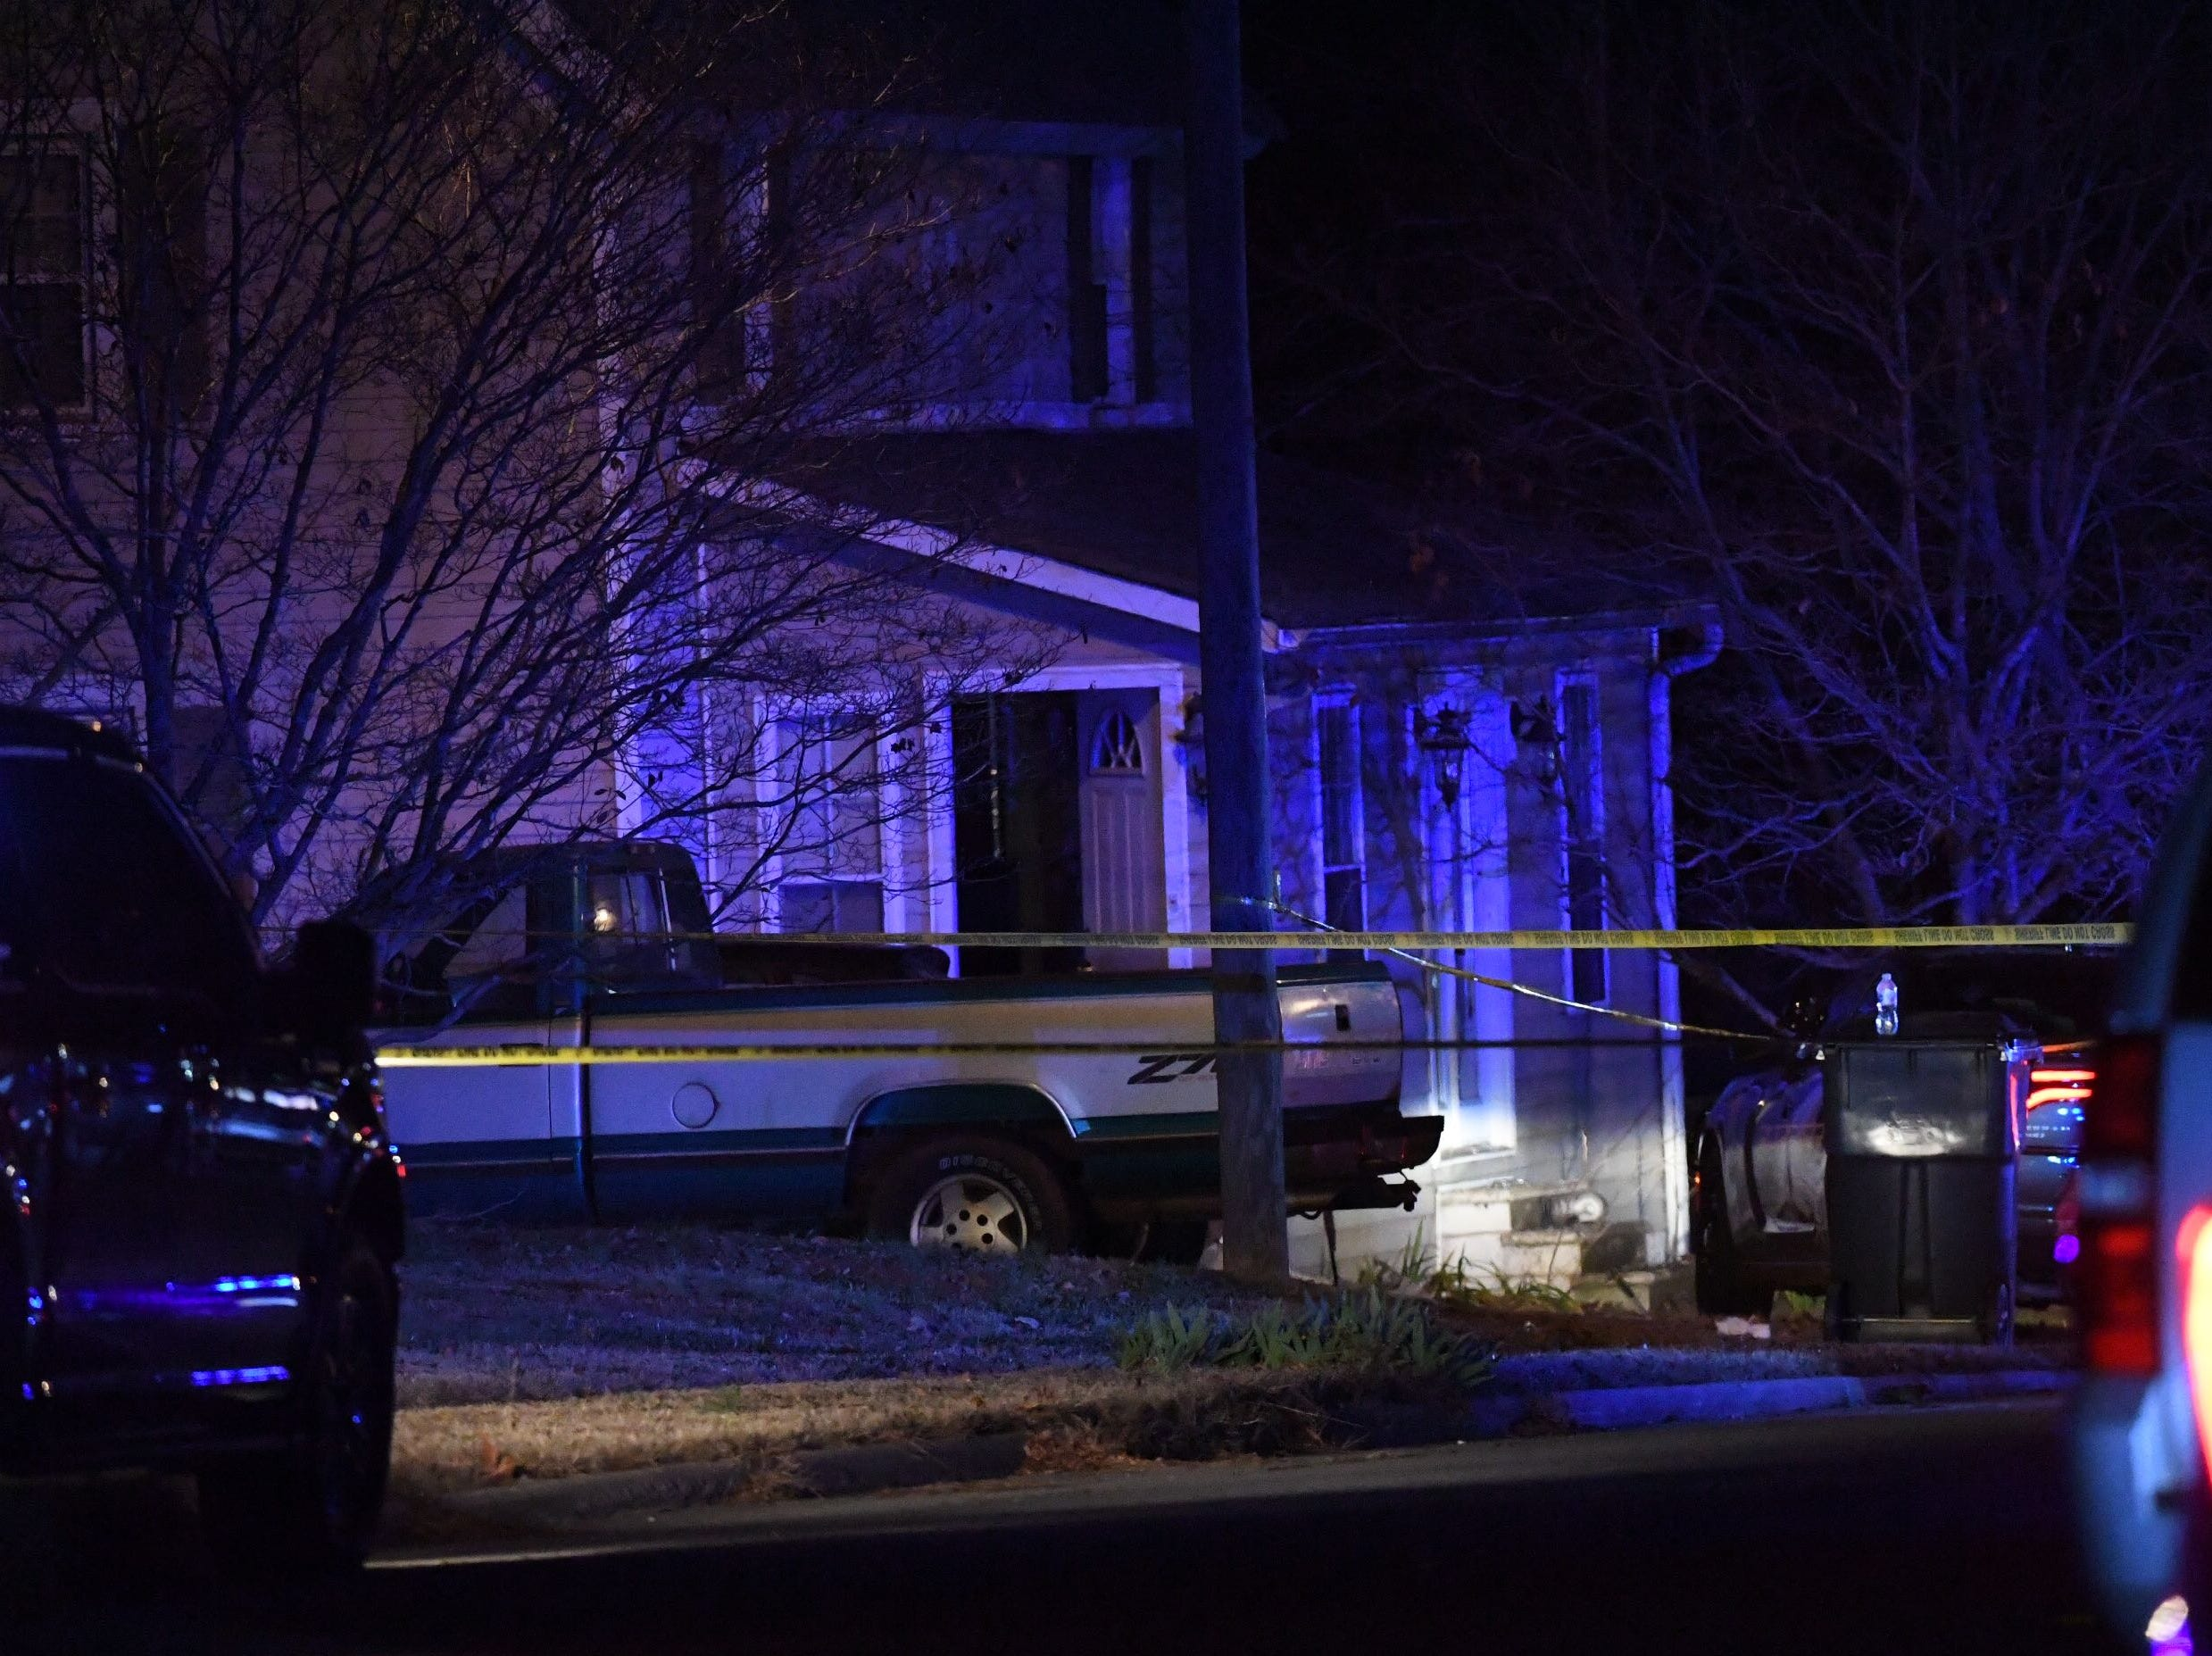 Anderson County Sheriff Chad McBride has confirmed that there has been an officer-involved shooting on Lebby Street in Pelzer. The shooting occurred around 5 p.m. on Thursday, Dec. 6, 2018.